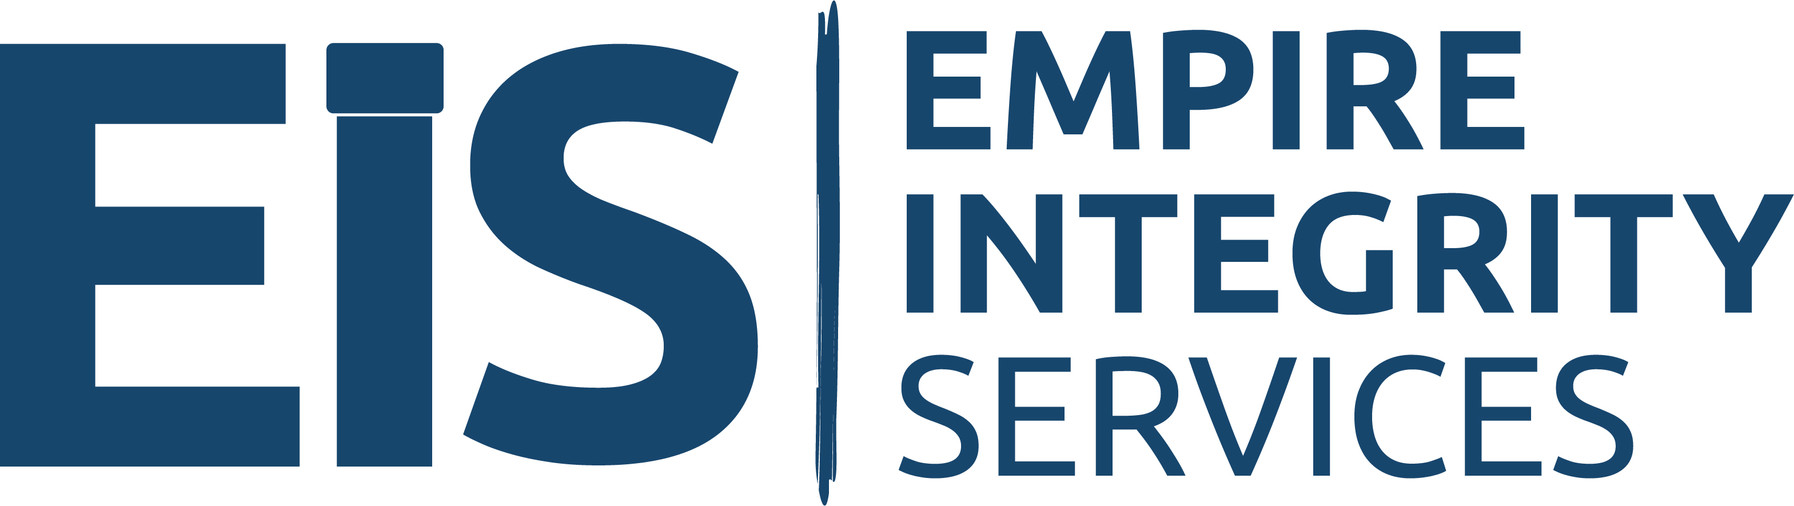 Empire Integrity Services